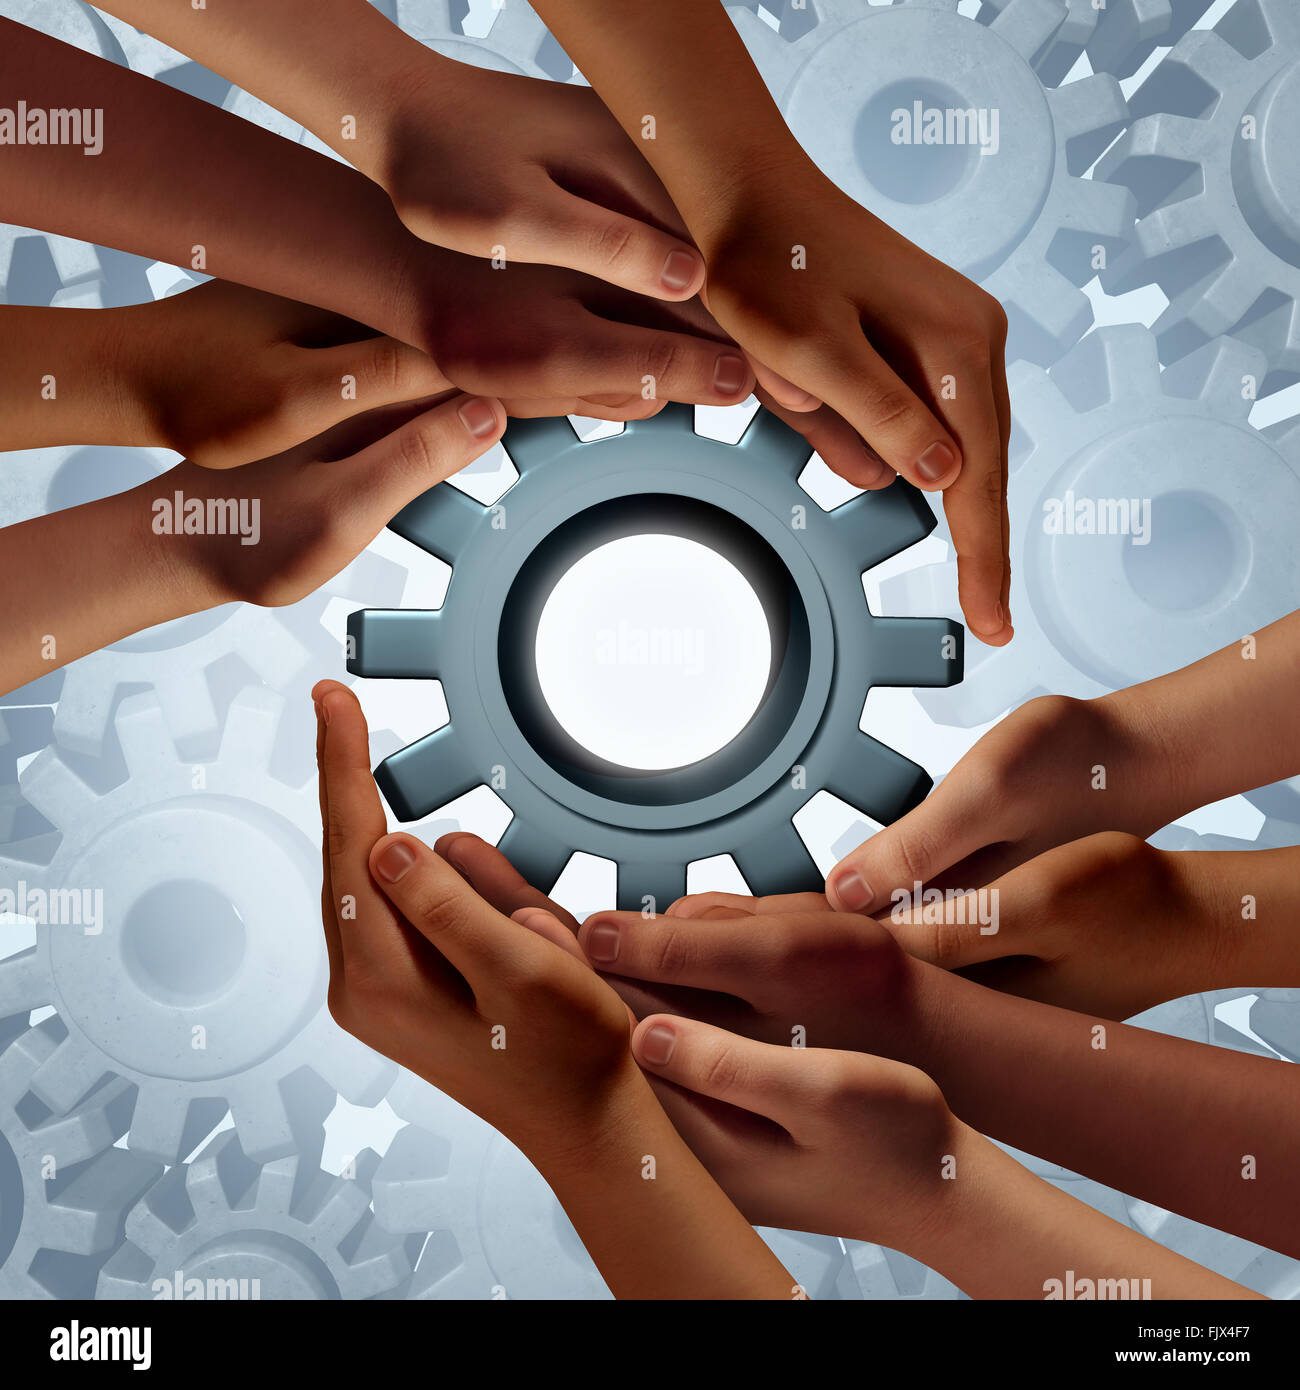 Global engineering and diverse community business success symbol as a group of hands holding a gear or cog as a - Stock Image